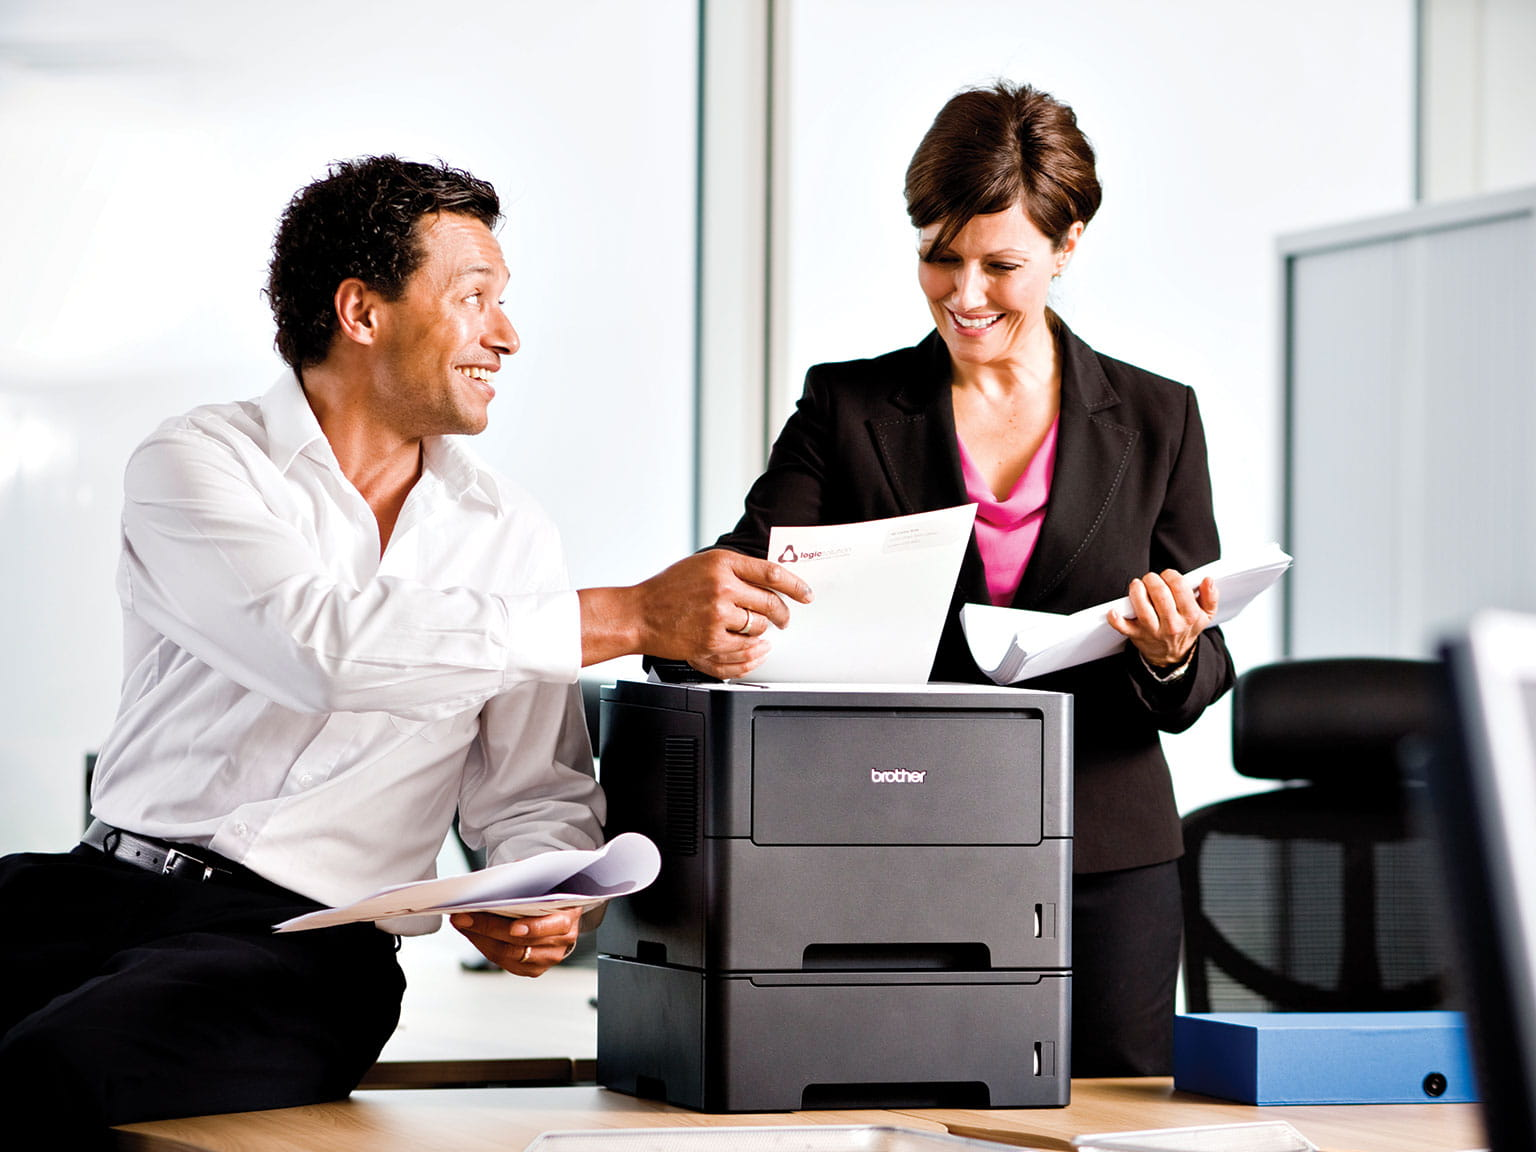 man and woman chatting next to a Brother printer